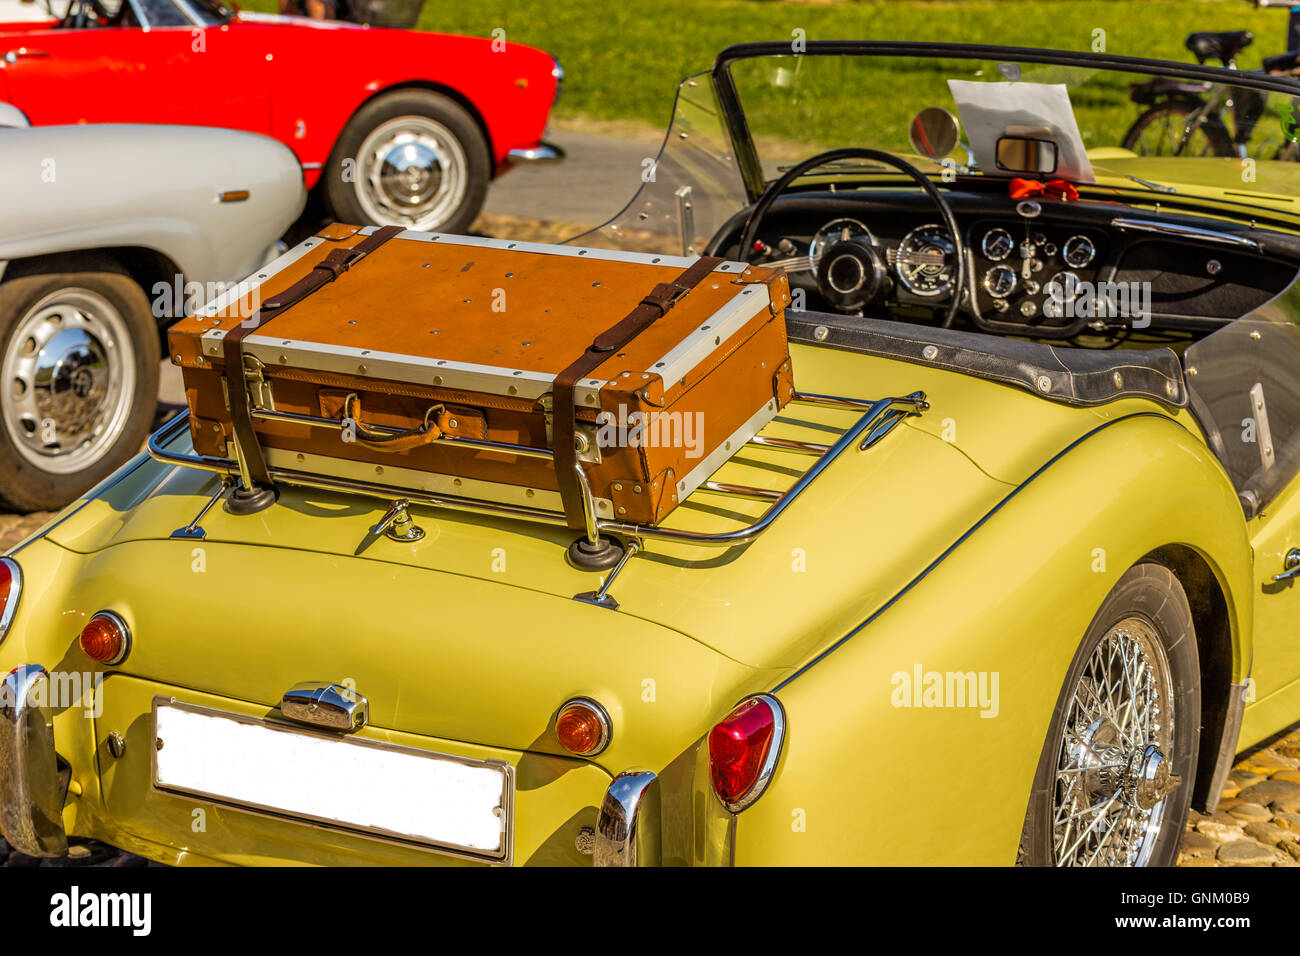 old leather suitcase on the luggage rack of yellow vintage car ...